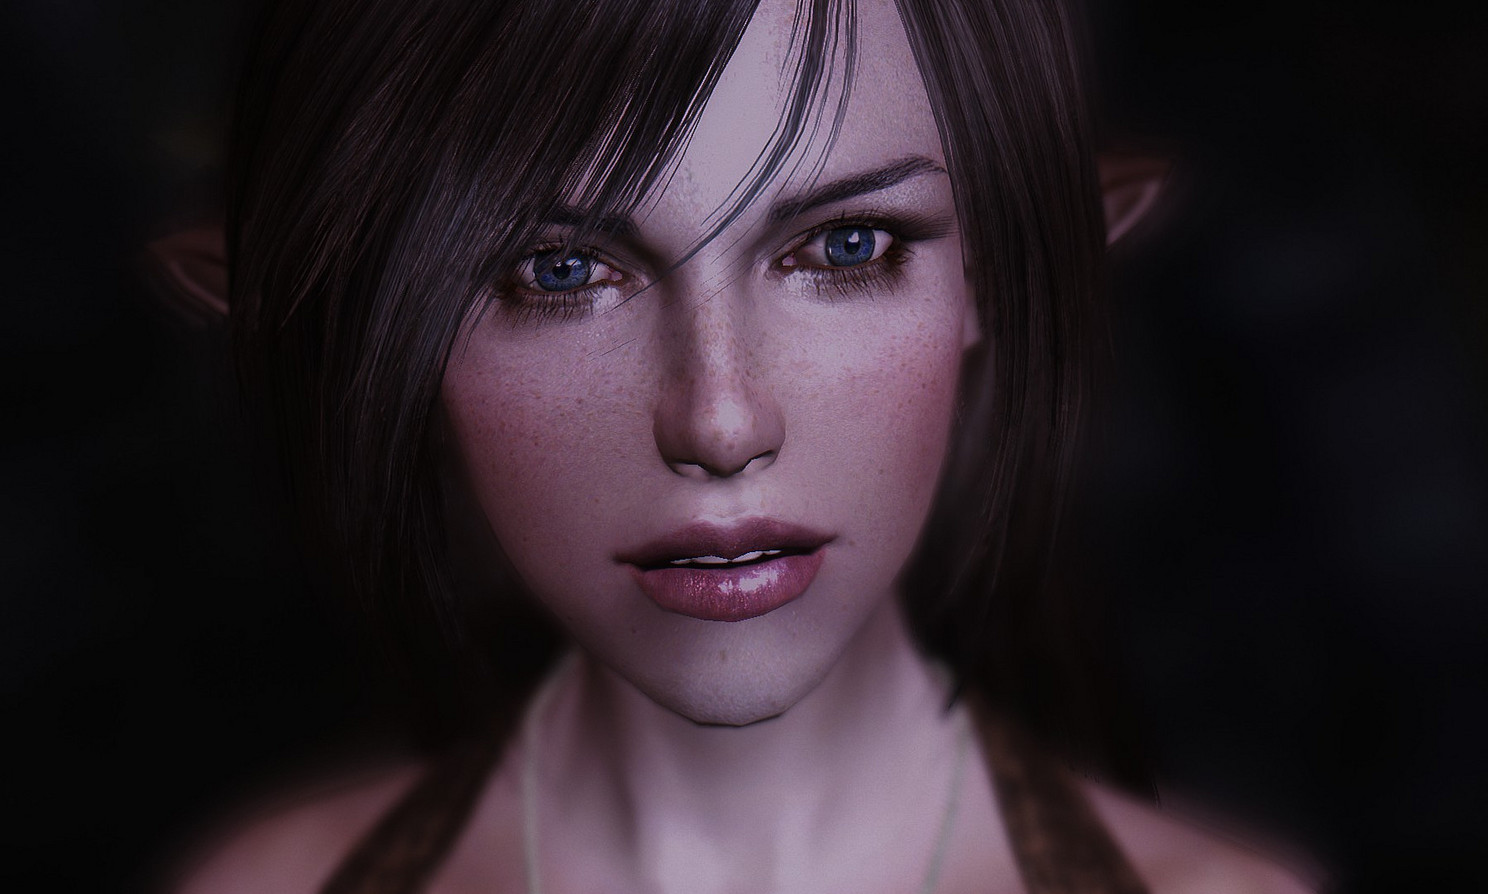 These Portraits From Skyrim Look More Like Magazine Covers Than Video Games  Polygon-5041